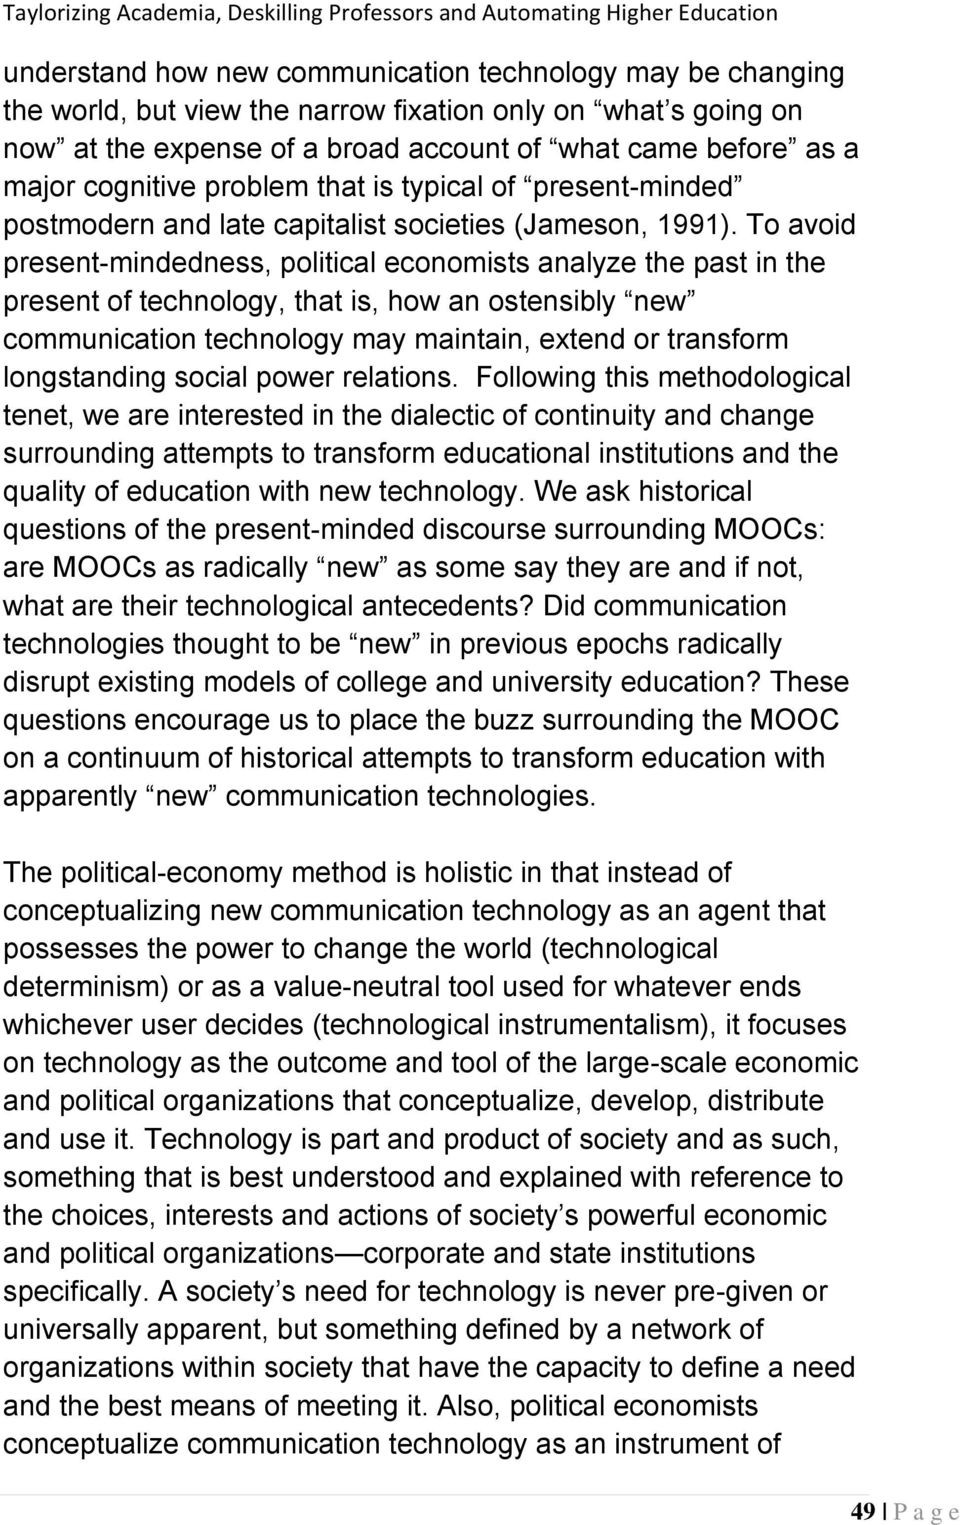 To avoid present-mindedness, political economists analyze the past in the present of technology, that is, how an ostensibly new communication technology may maintain, extend or transform longstanding